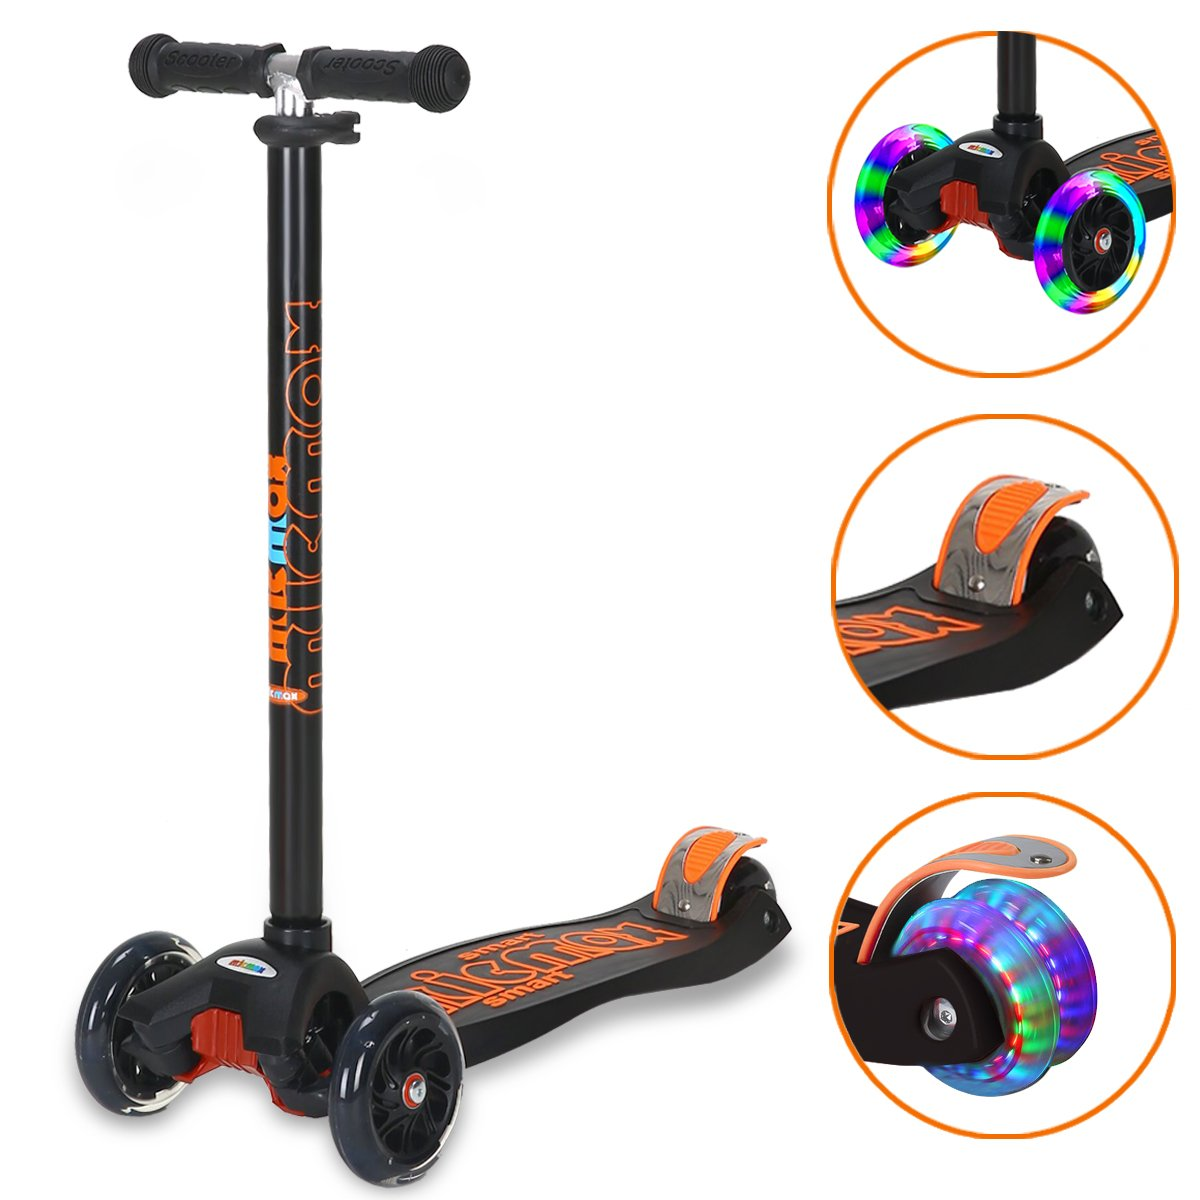 Banne Scooter for Kids 3 Wheel Adjustable Height Scooters with Flashing Wheels for Boys Girls 3-14 Year Old (Black)